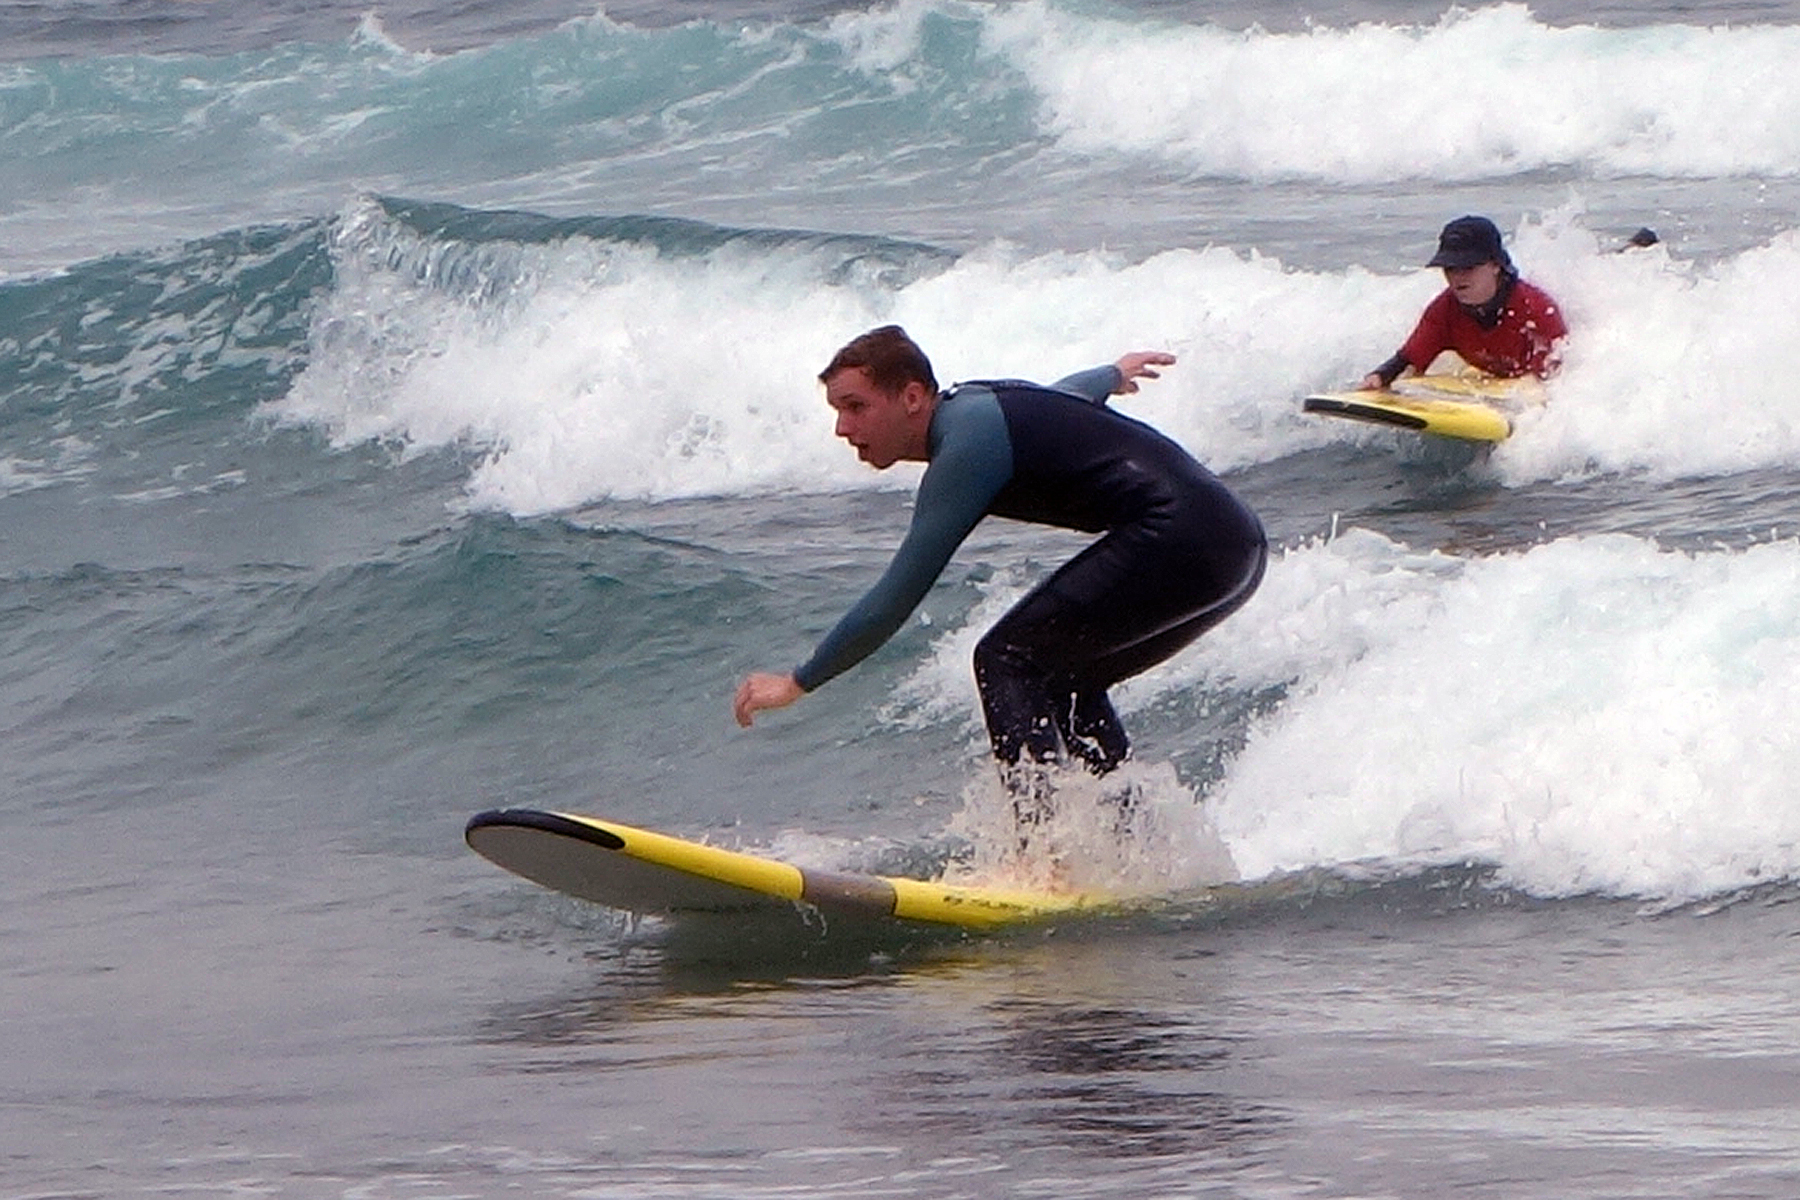 Interns have the opportunity to learn and teach surfing.